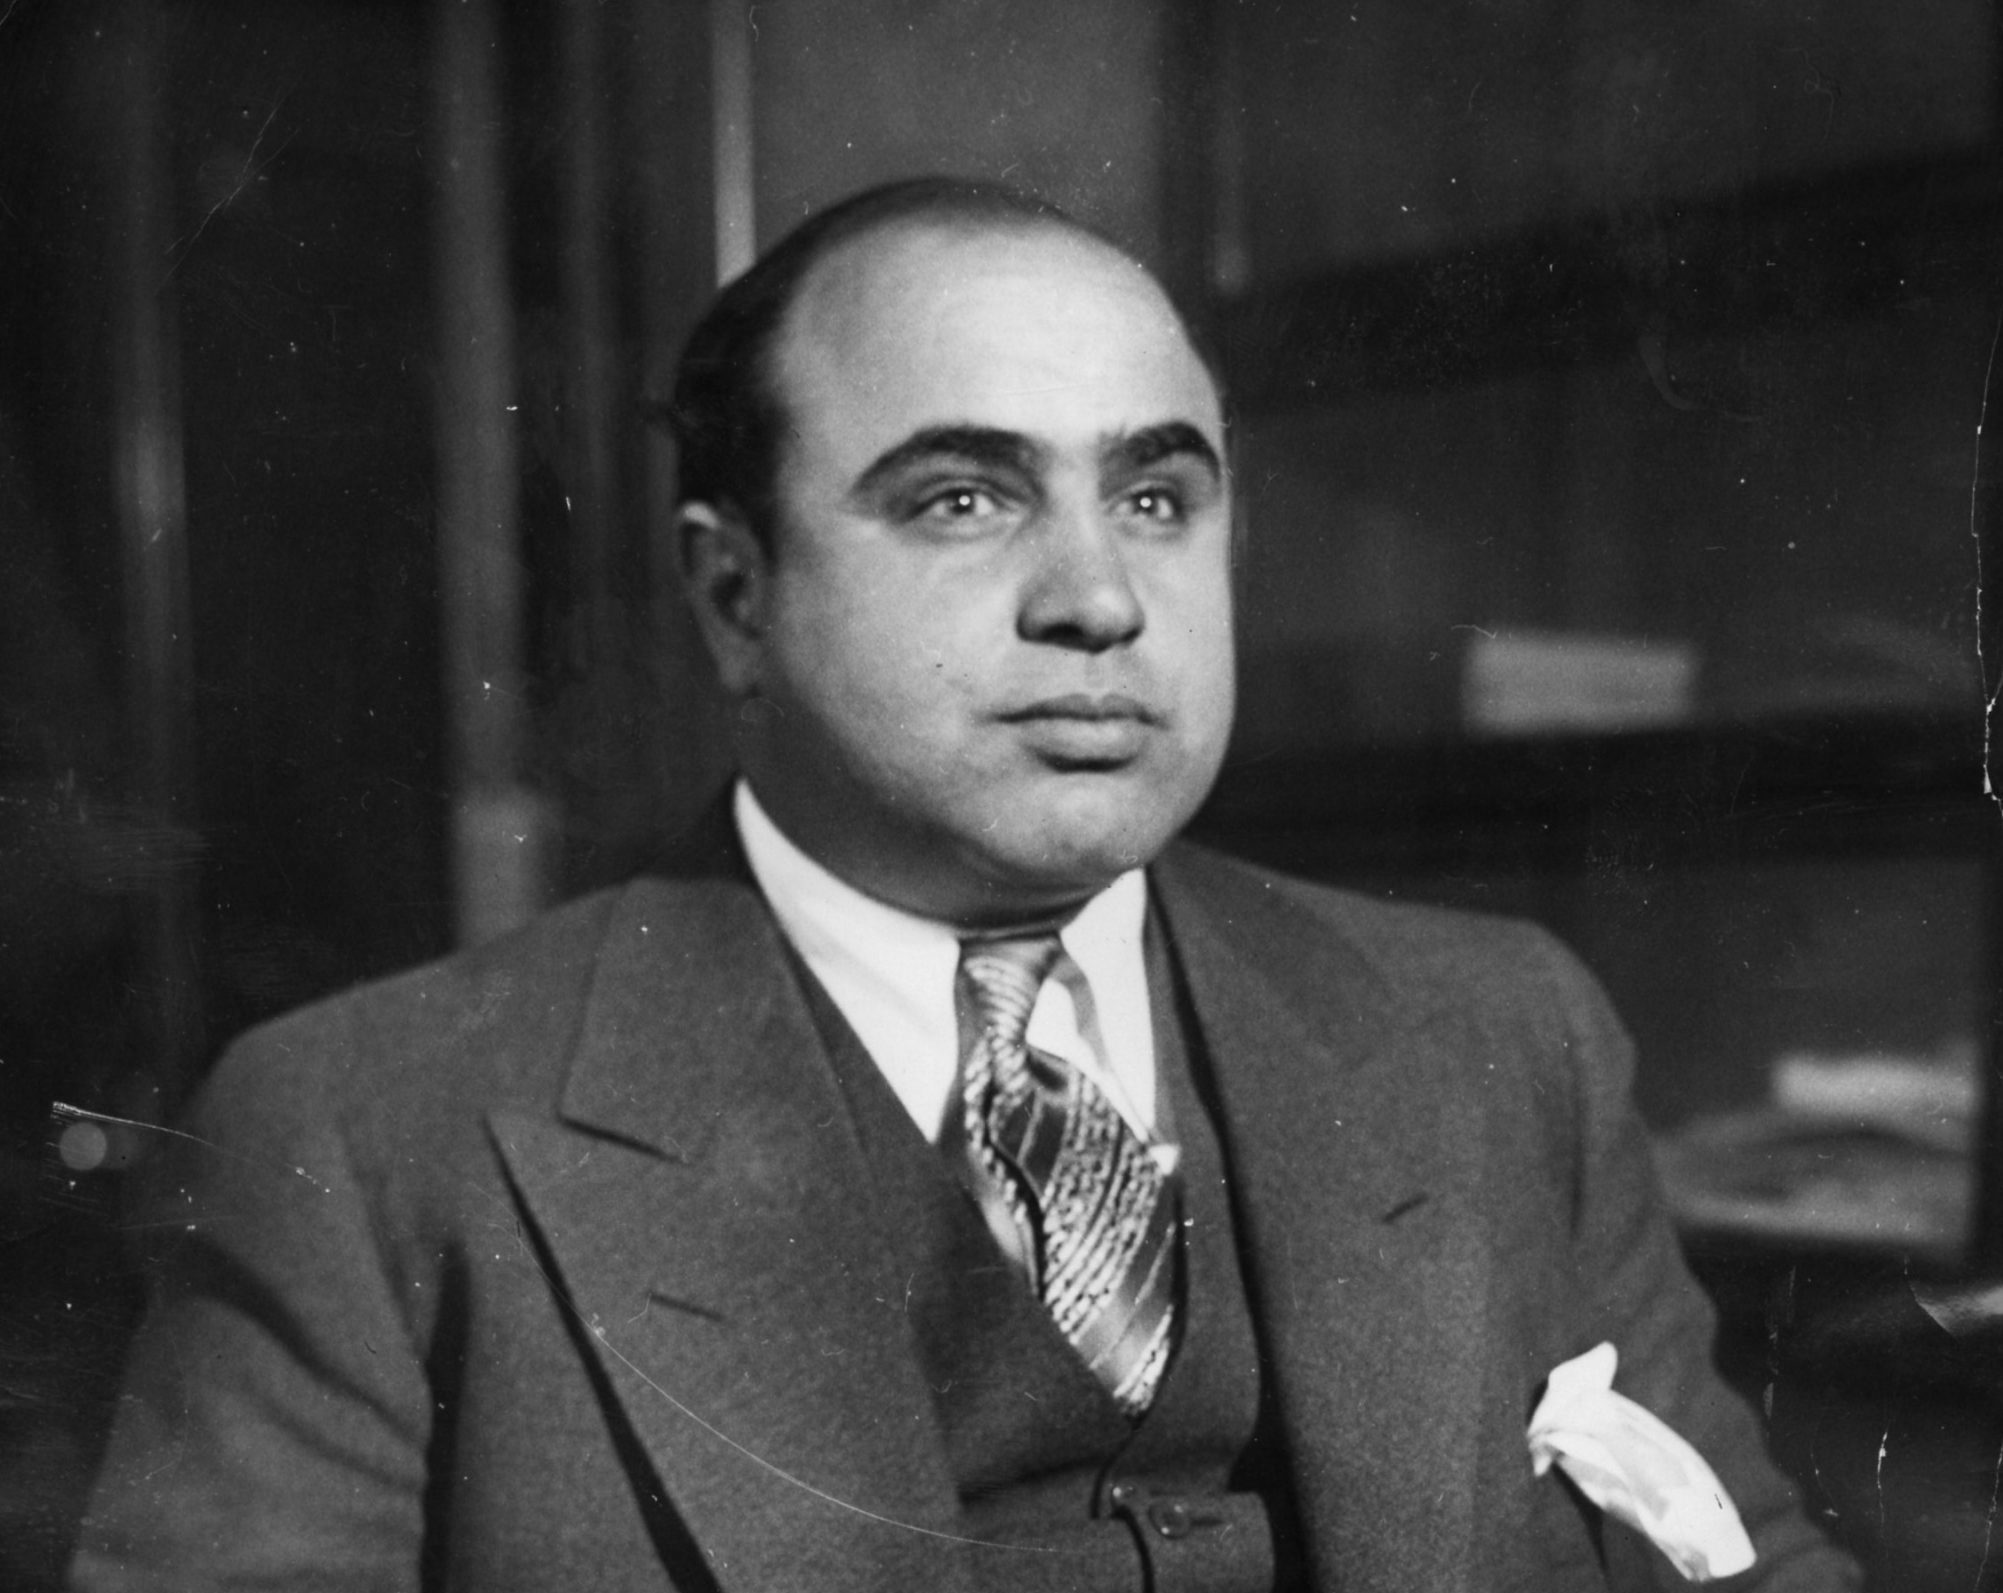 Al Capone in 1930 scaled e1602771631662 20 Facts You Won't Believe About The Untouchables